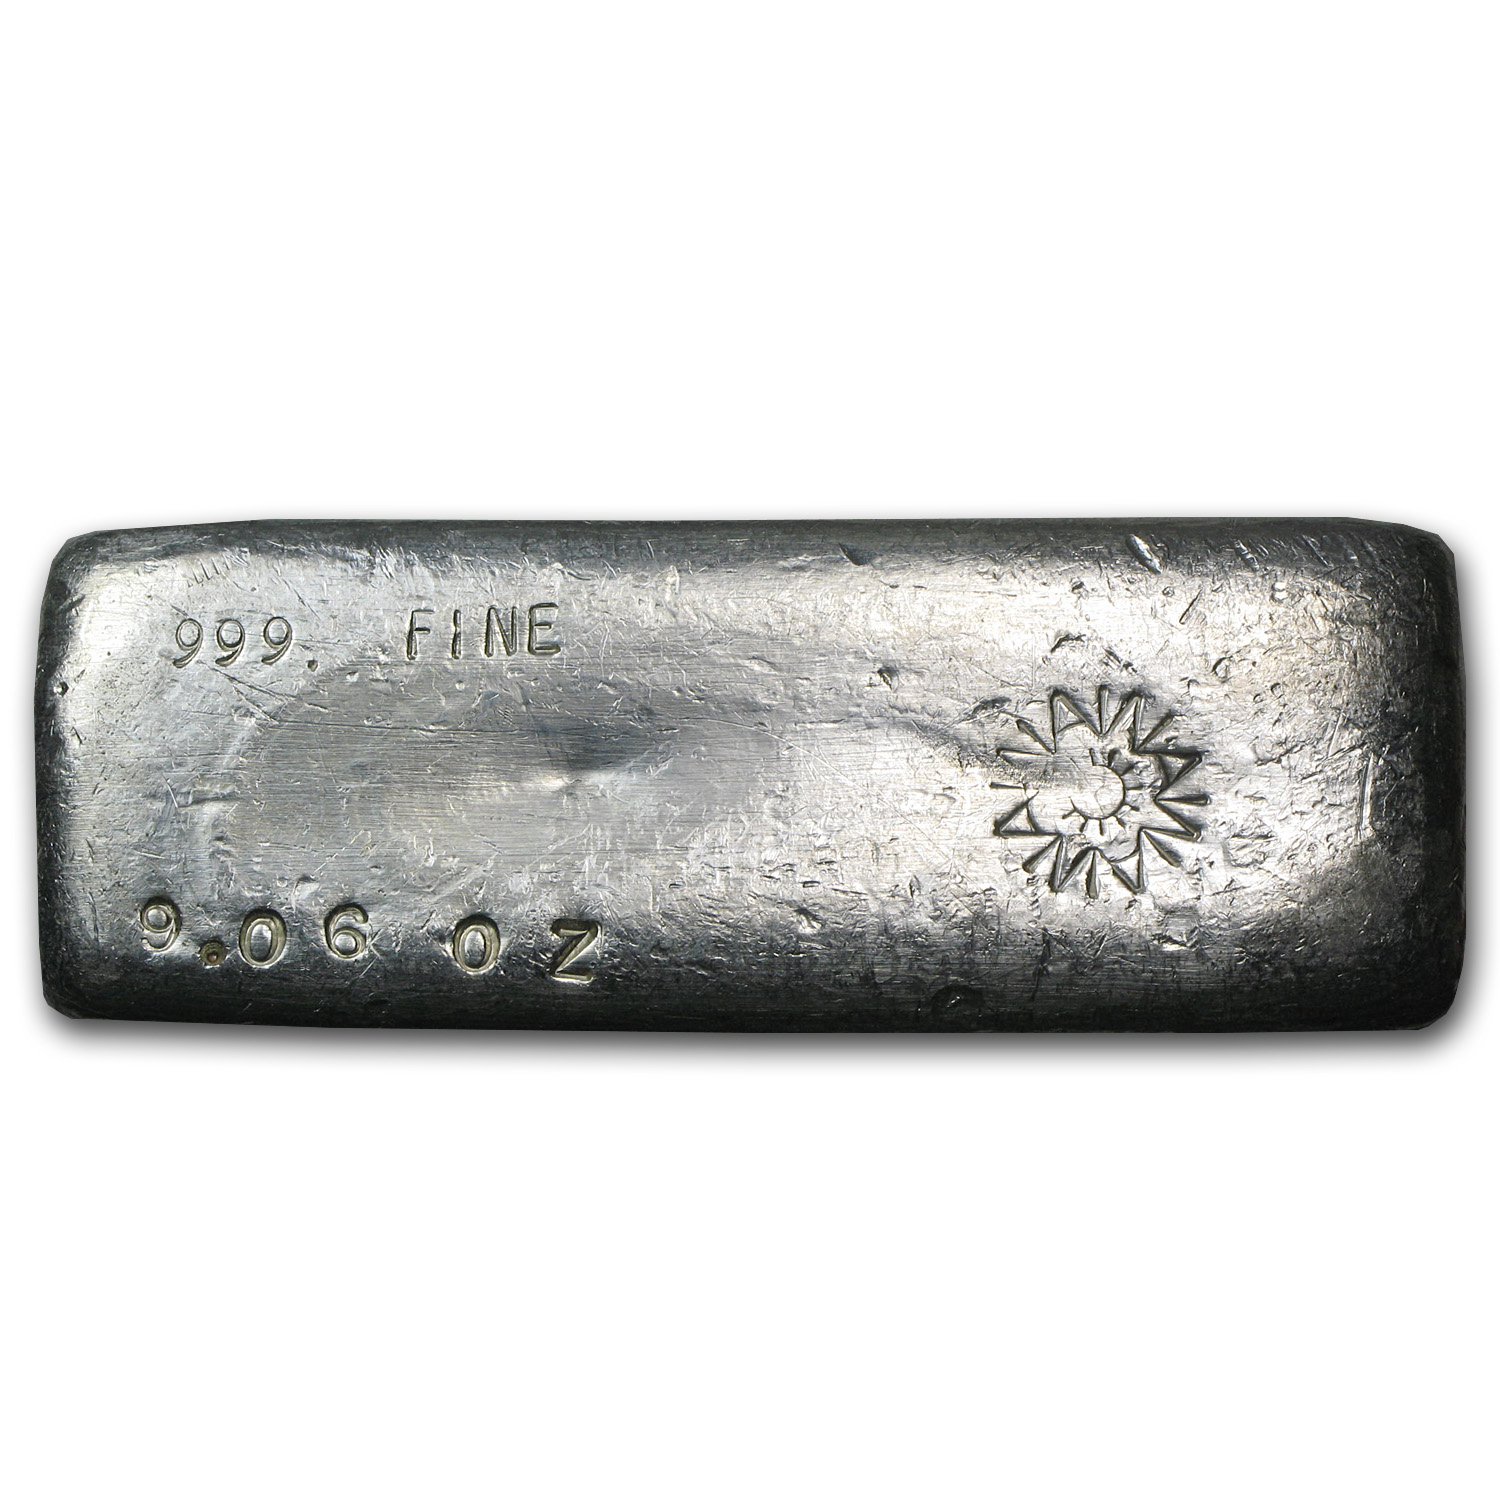 9.06 oz Silver Bars - A W Smelter